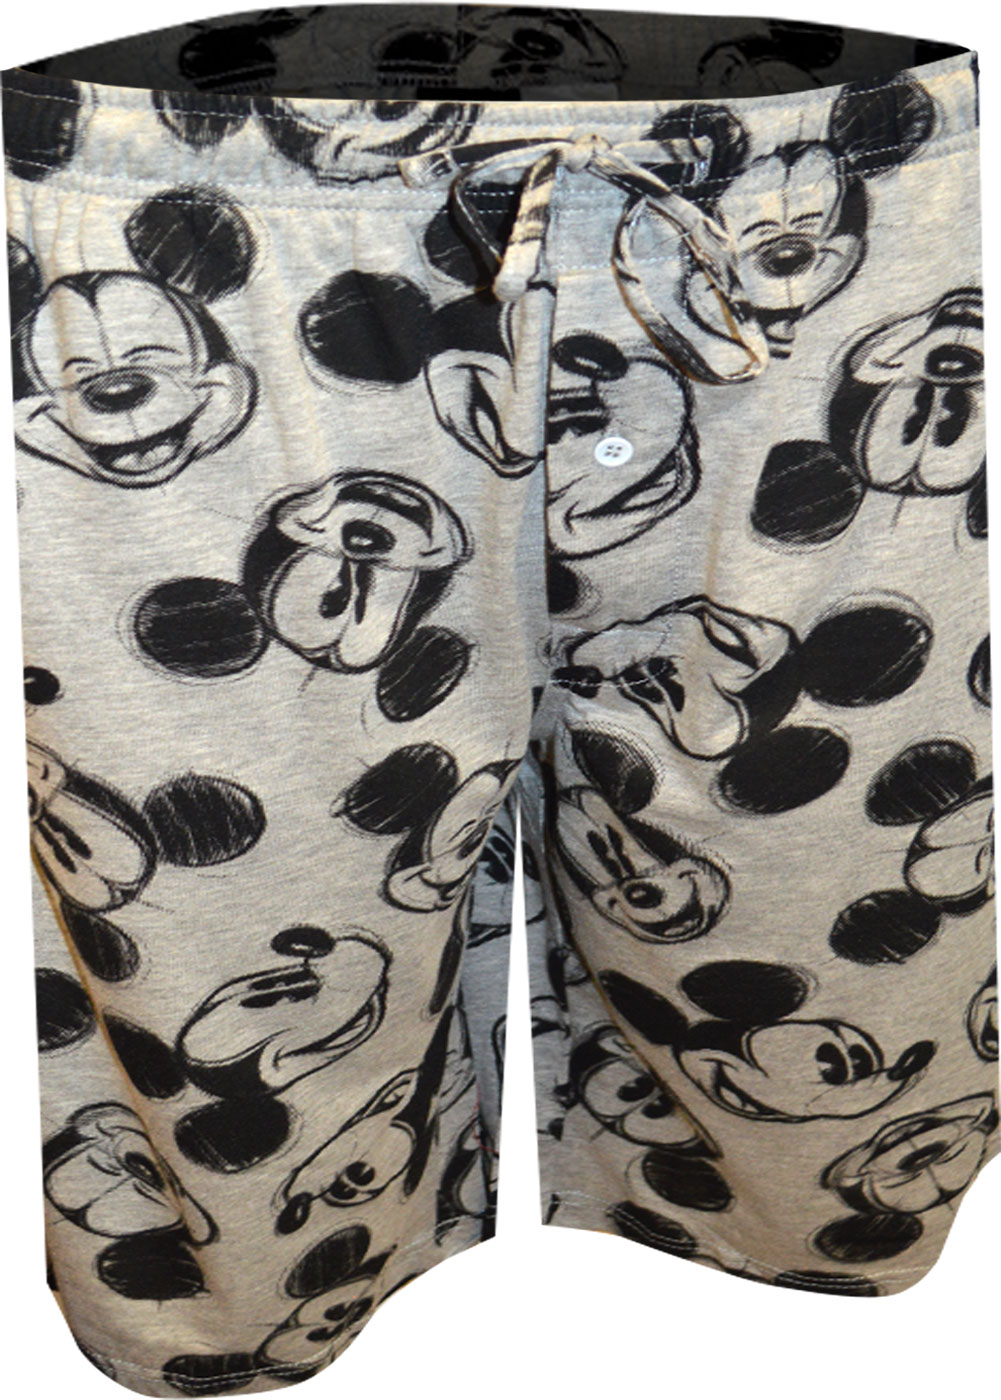 Image of Disney's Mickey Mouse Sketch Lounge Shorts for men